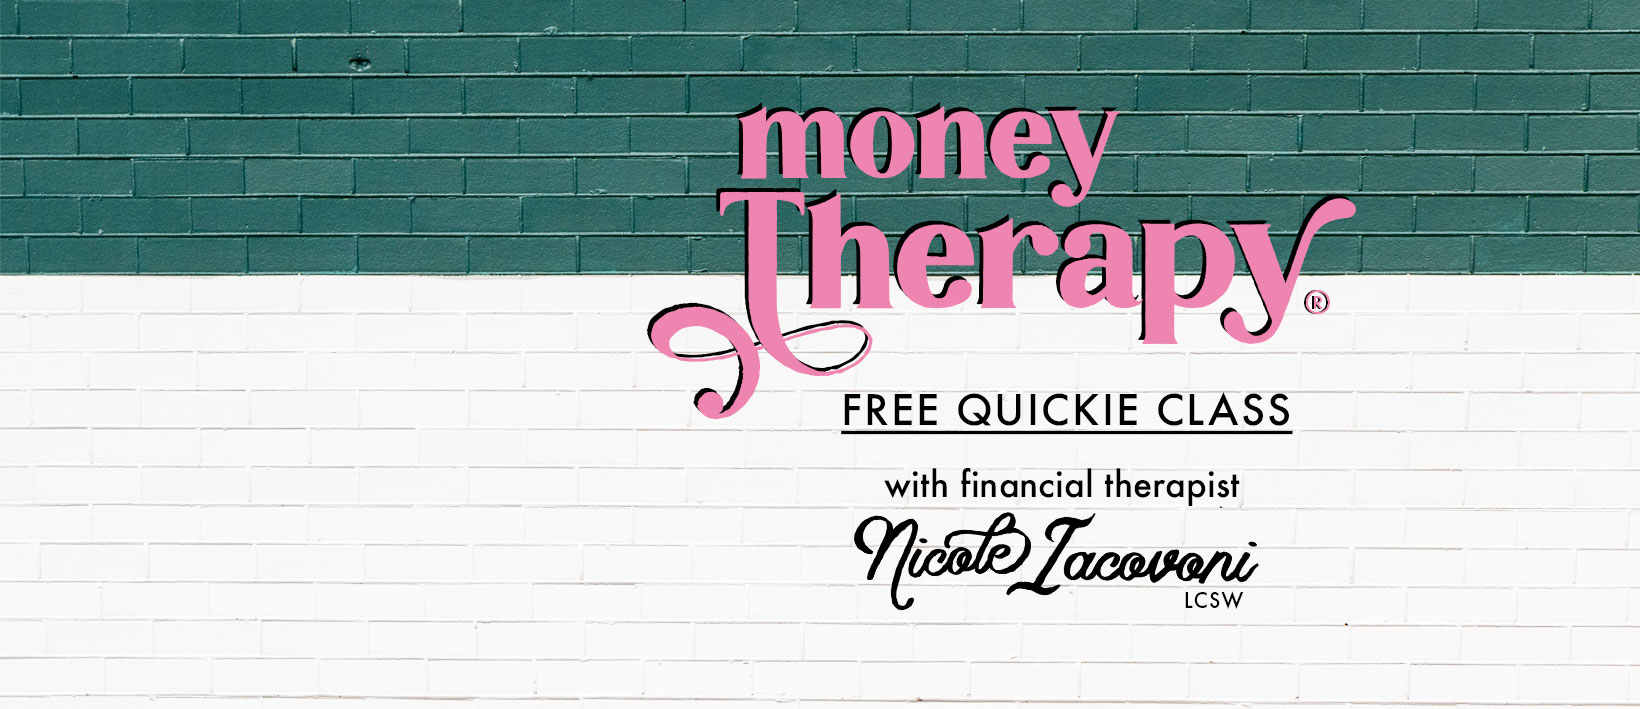 Money Therapy Quickie Class Logo on Green Brick Wall